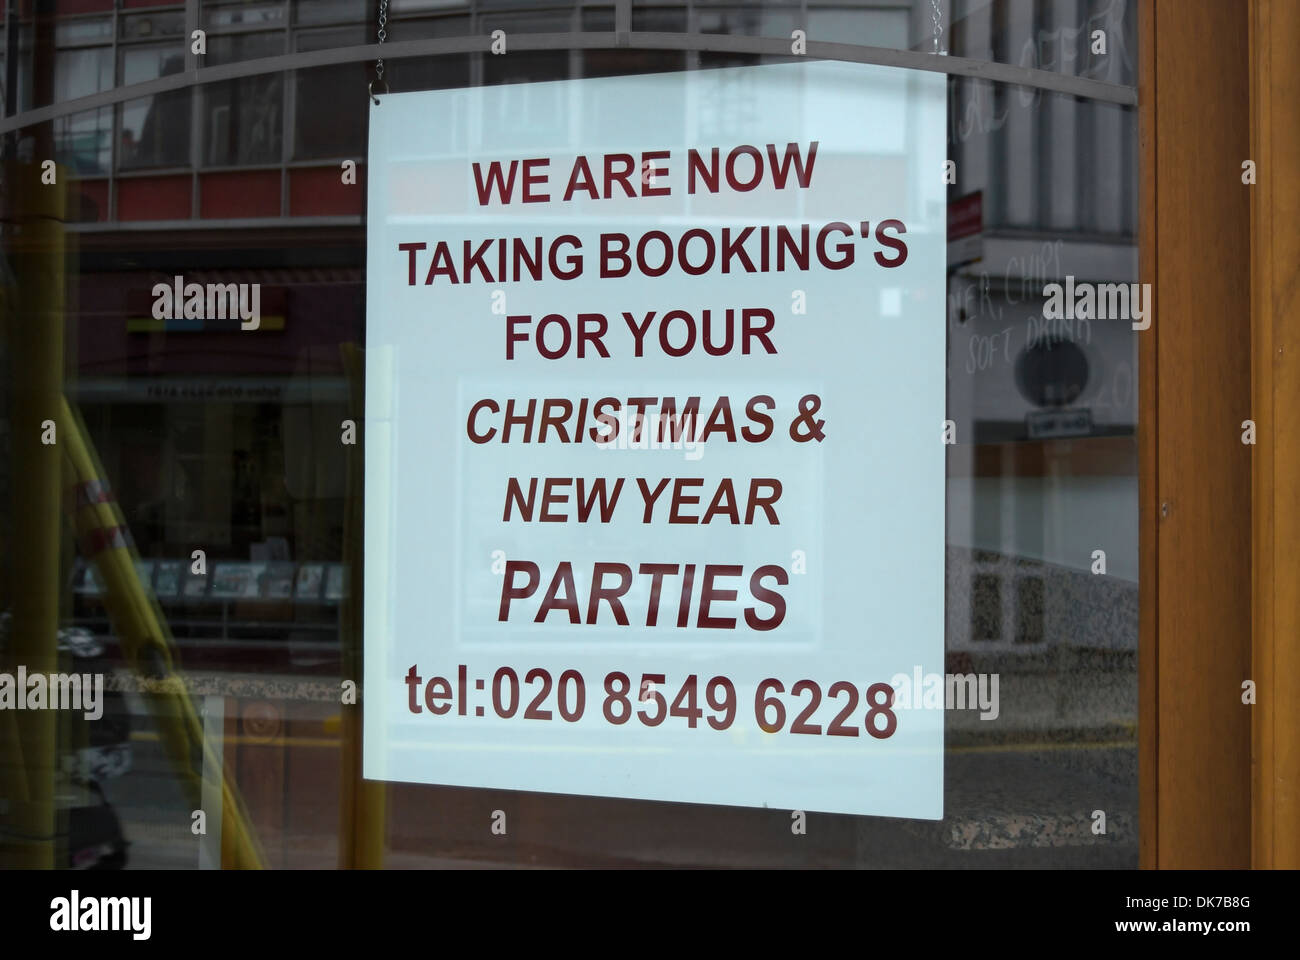 unnecessary apostrophe on a sign advertising christmas and new year parties at a restaurant in kingston, surrey, england - Stock Image